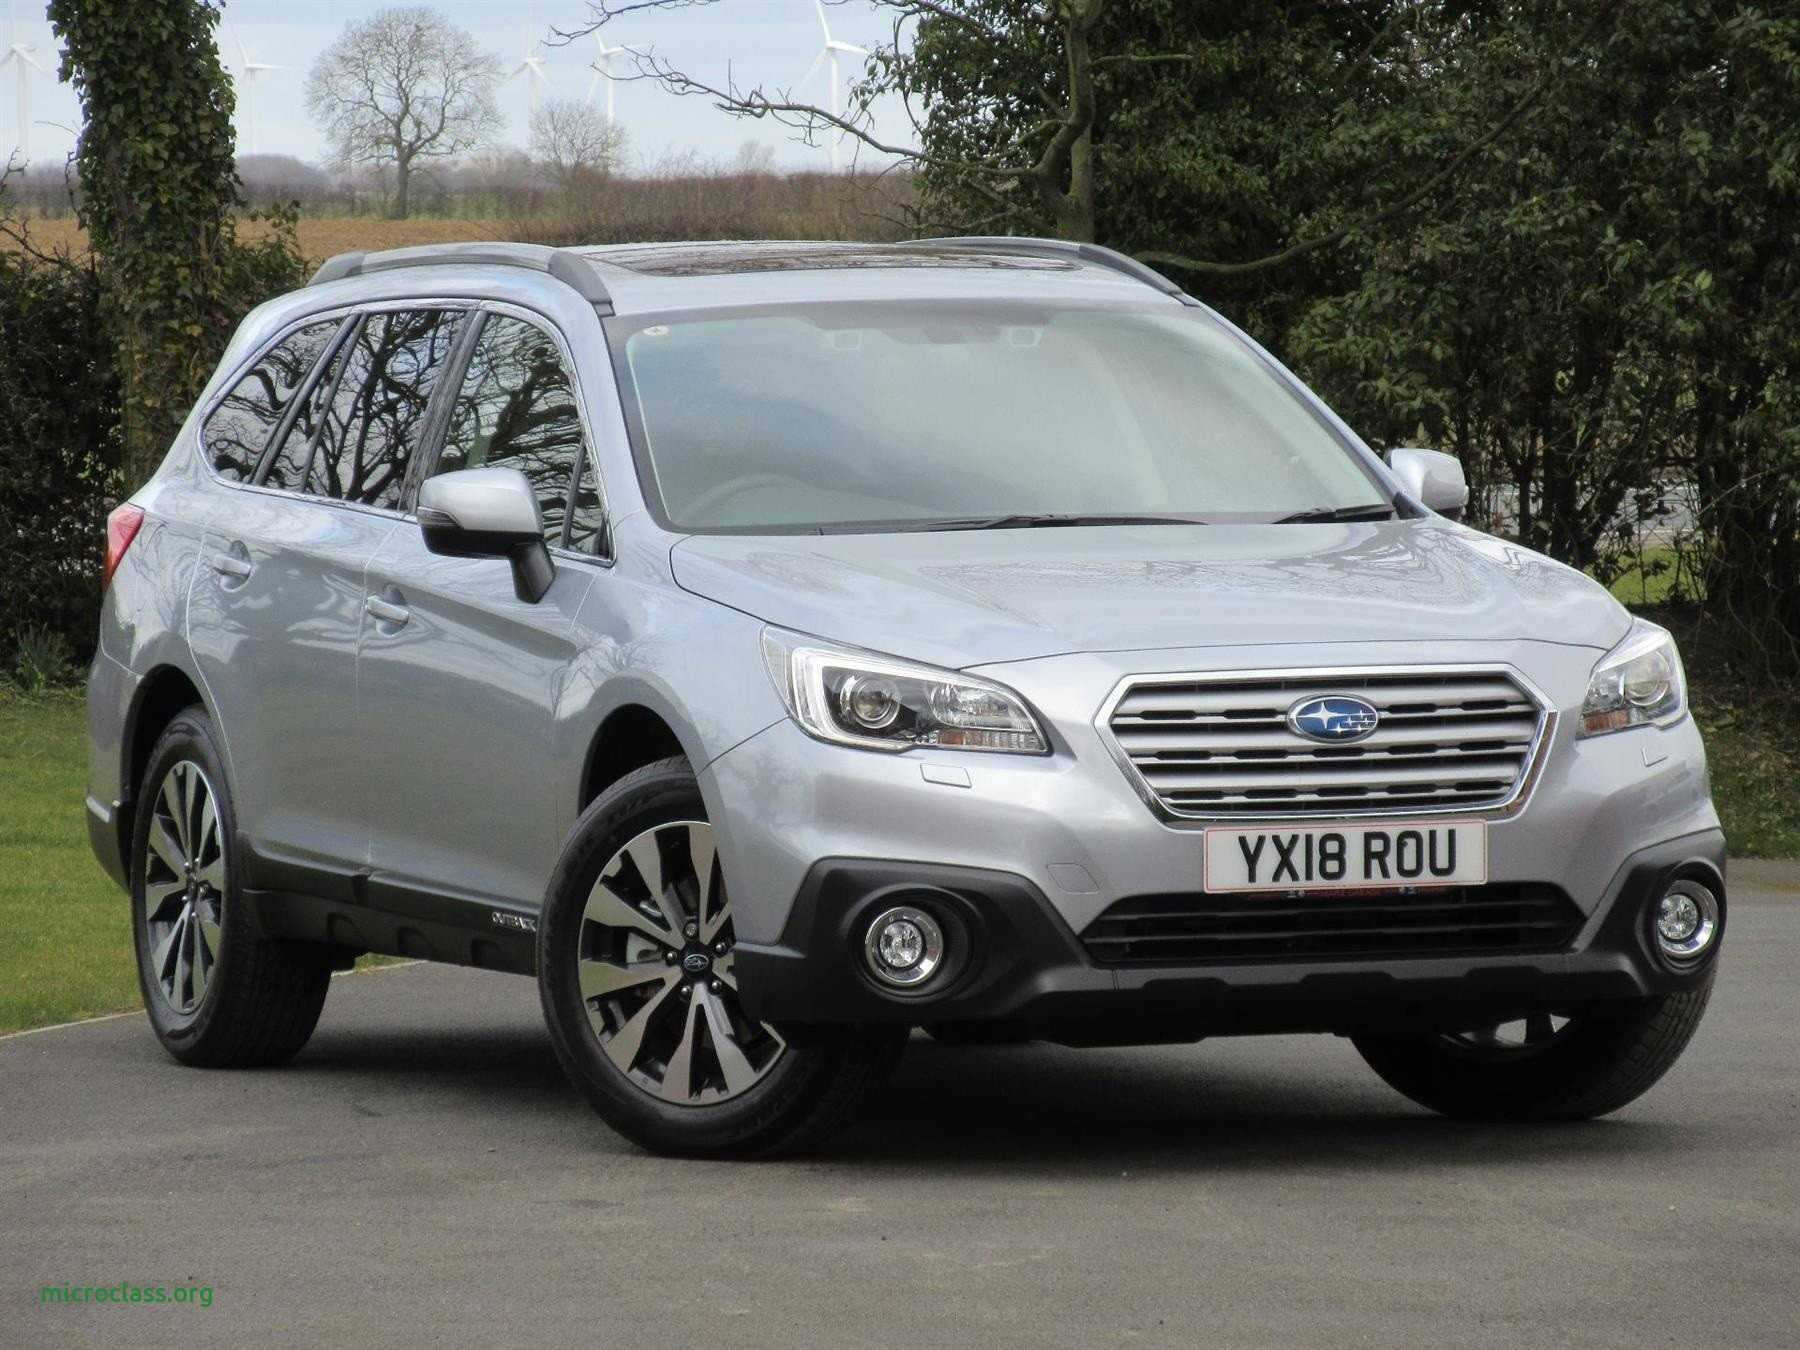 50 All New 2019 Subaru Outback Turbo Hybrid Images